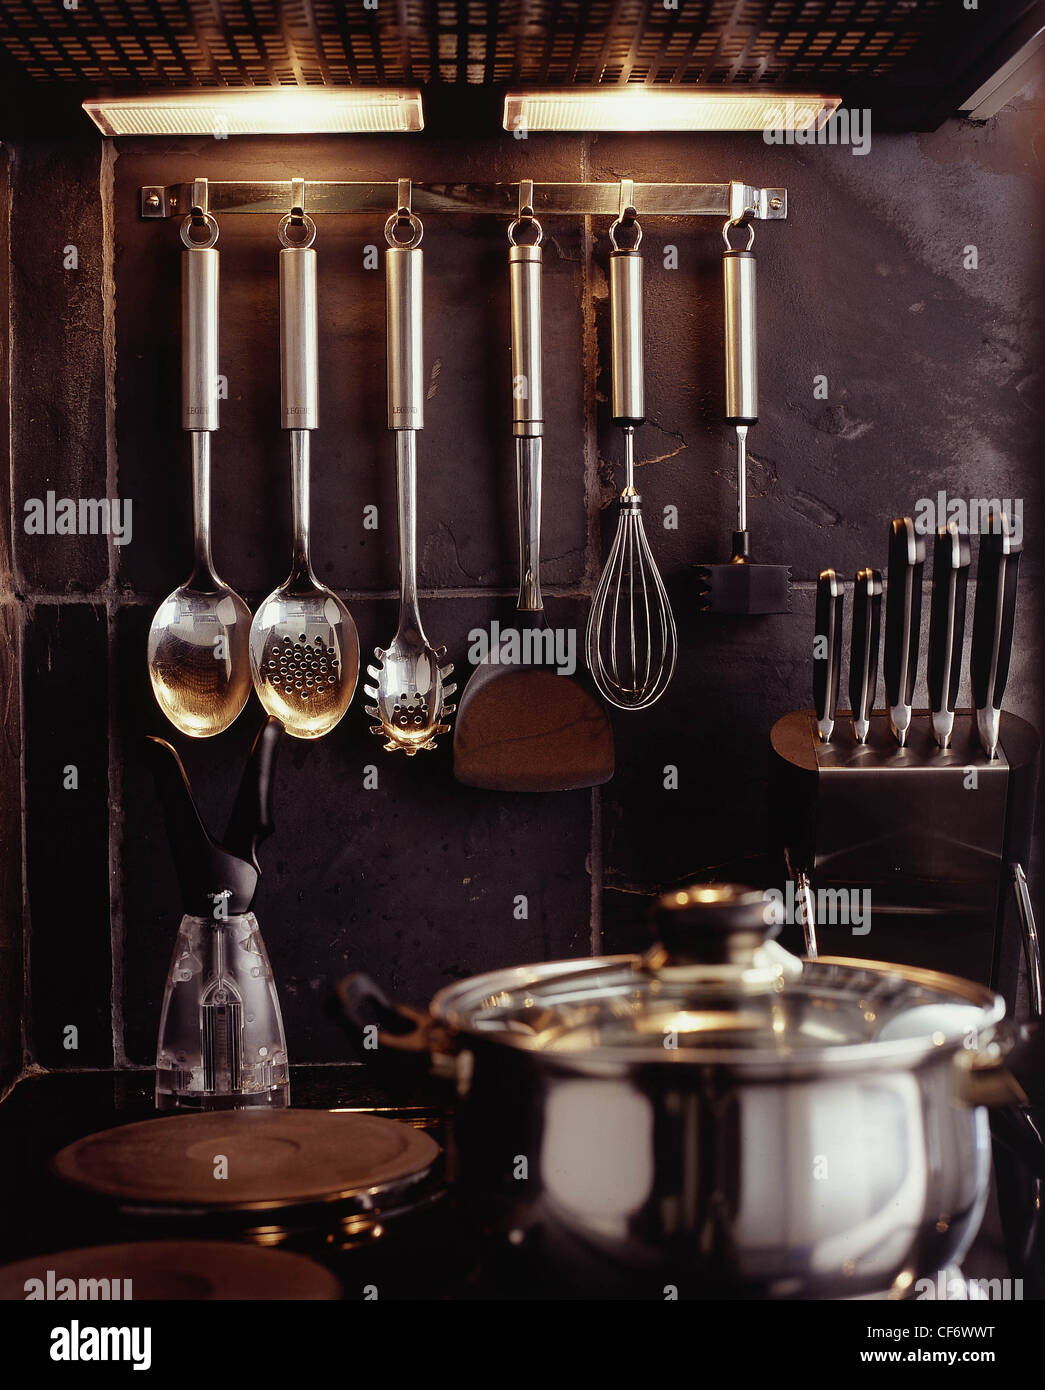 Hanging utensil rack for kitchen - Stock Photo B Three Different Kitchen Styles Rack Metal Kitchen Utensils Hanging From It On Back Rough Slate Tiled Wall Above Hob Saucepan